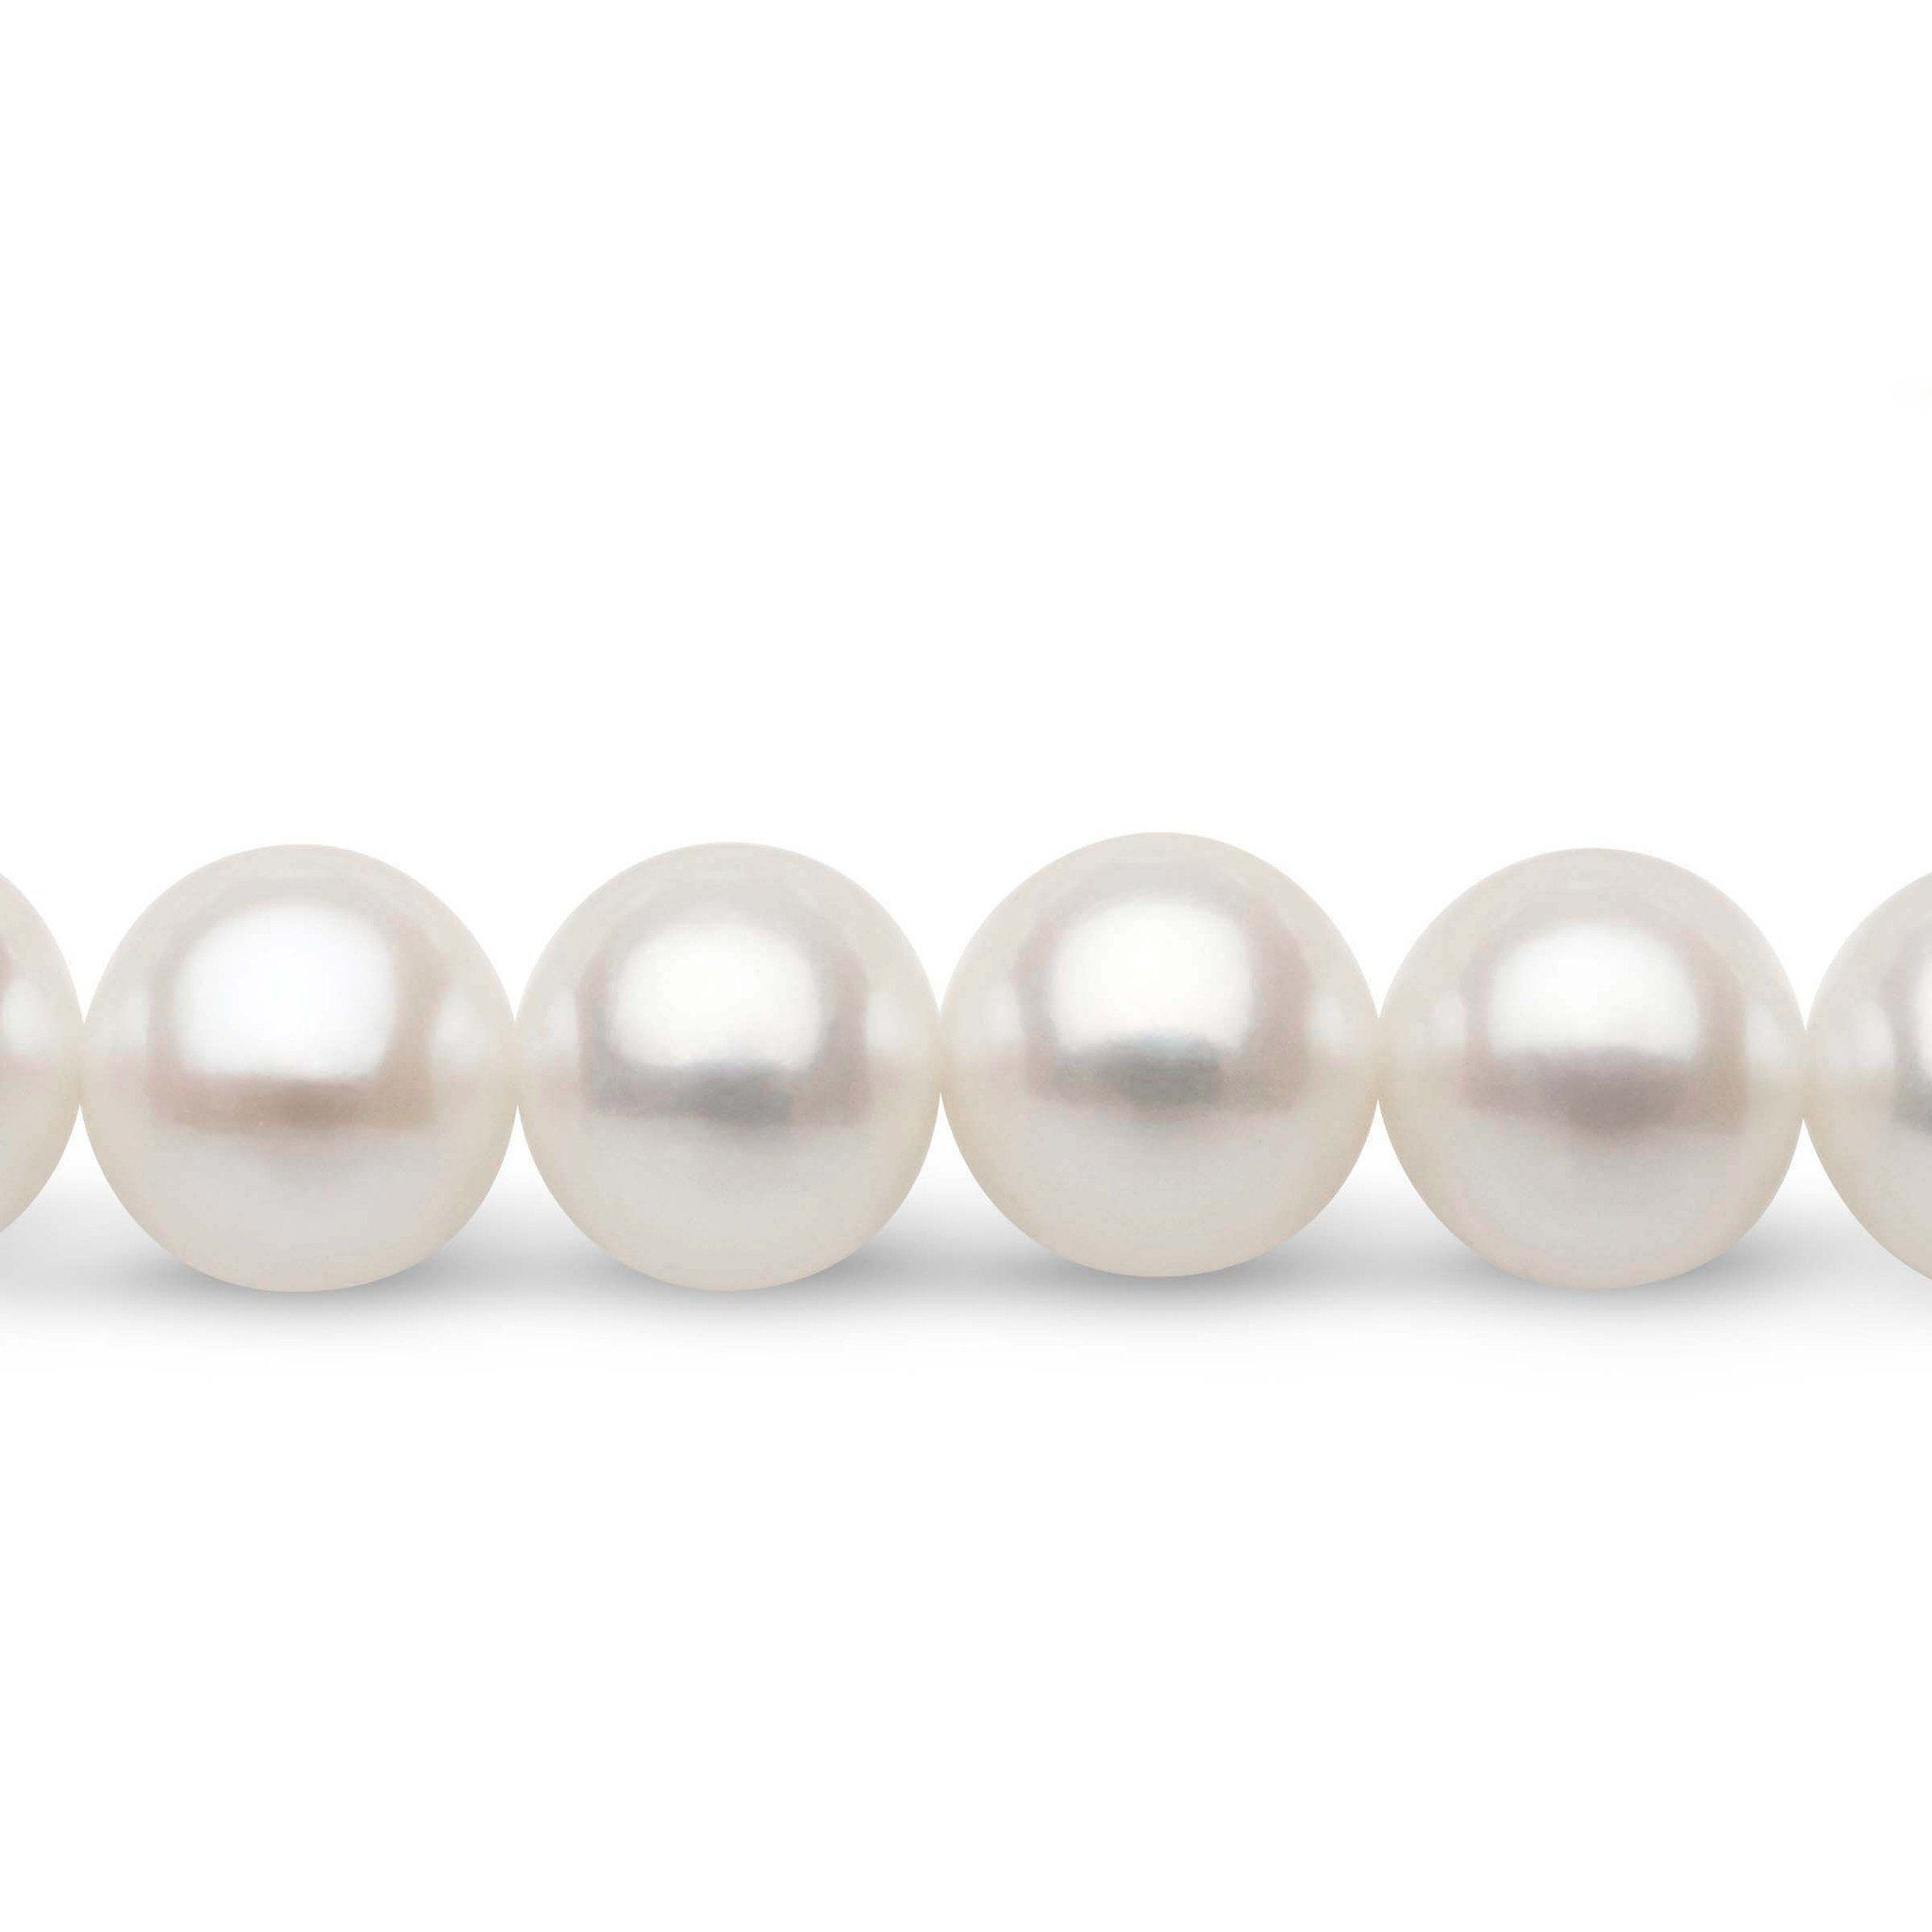 Loose White Freshwater Pearls (Sold as Set of 4)